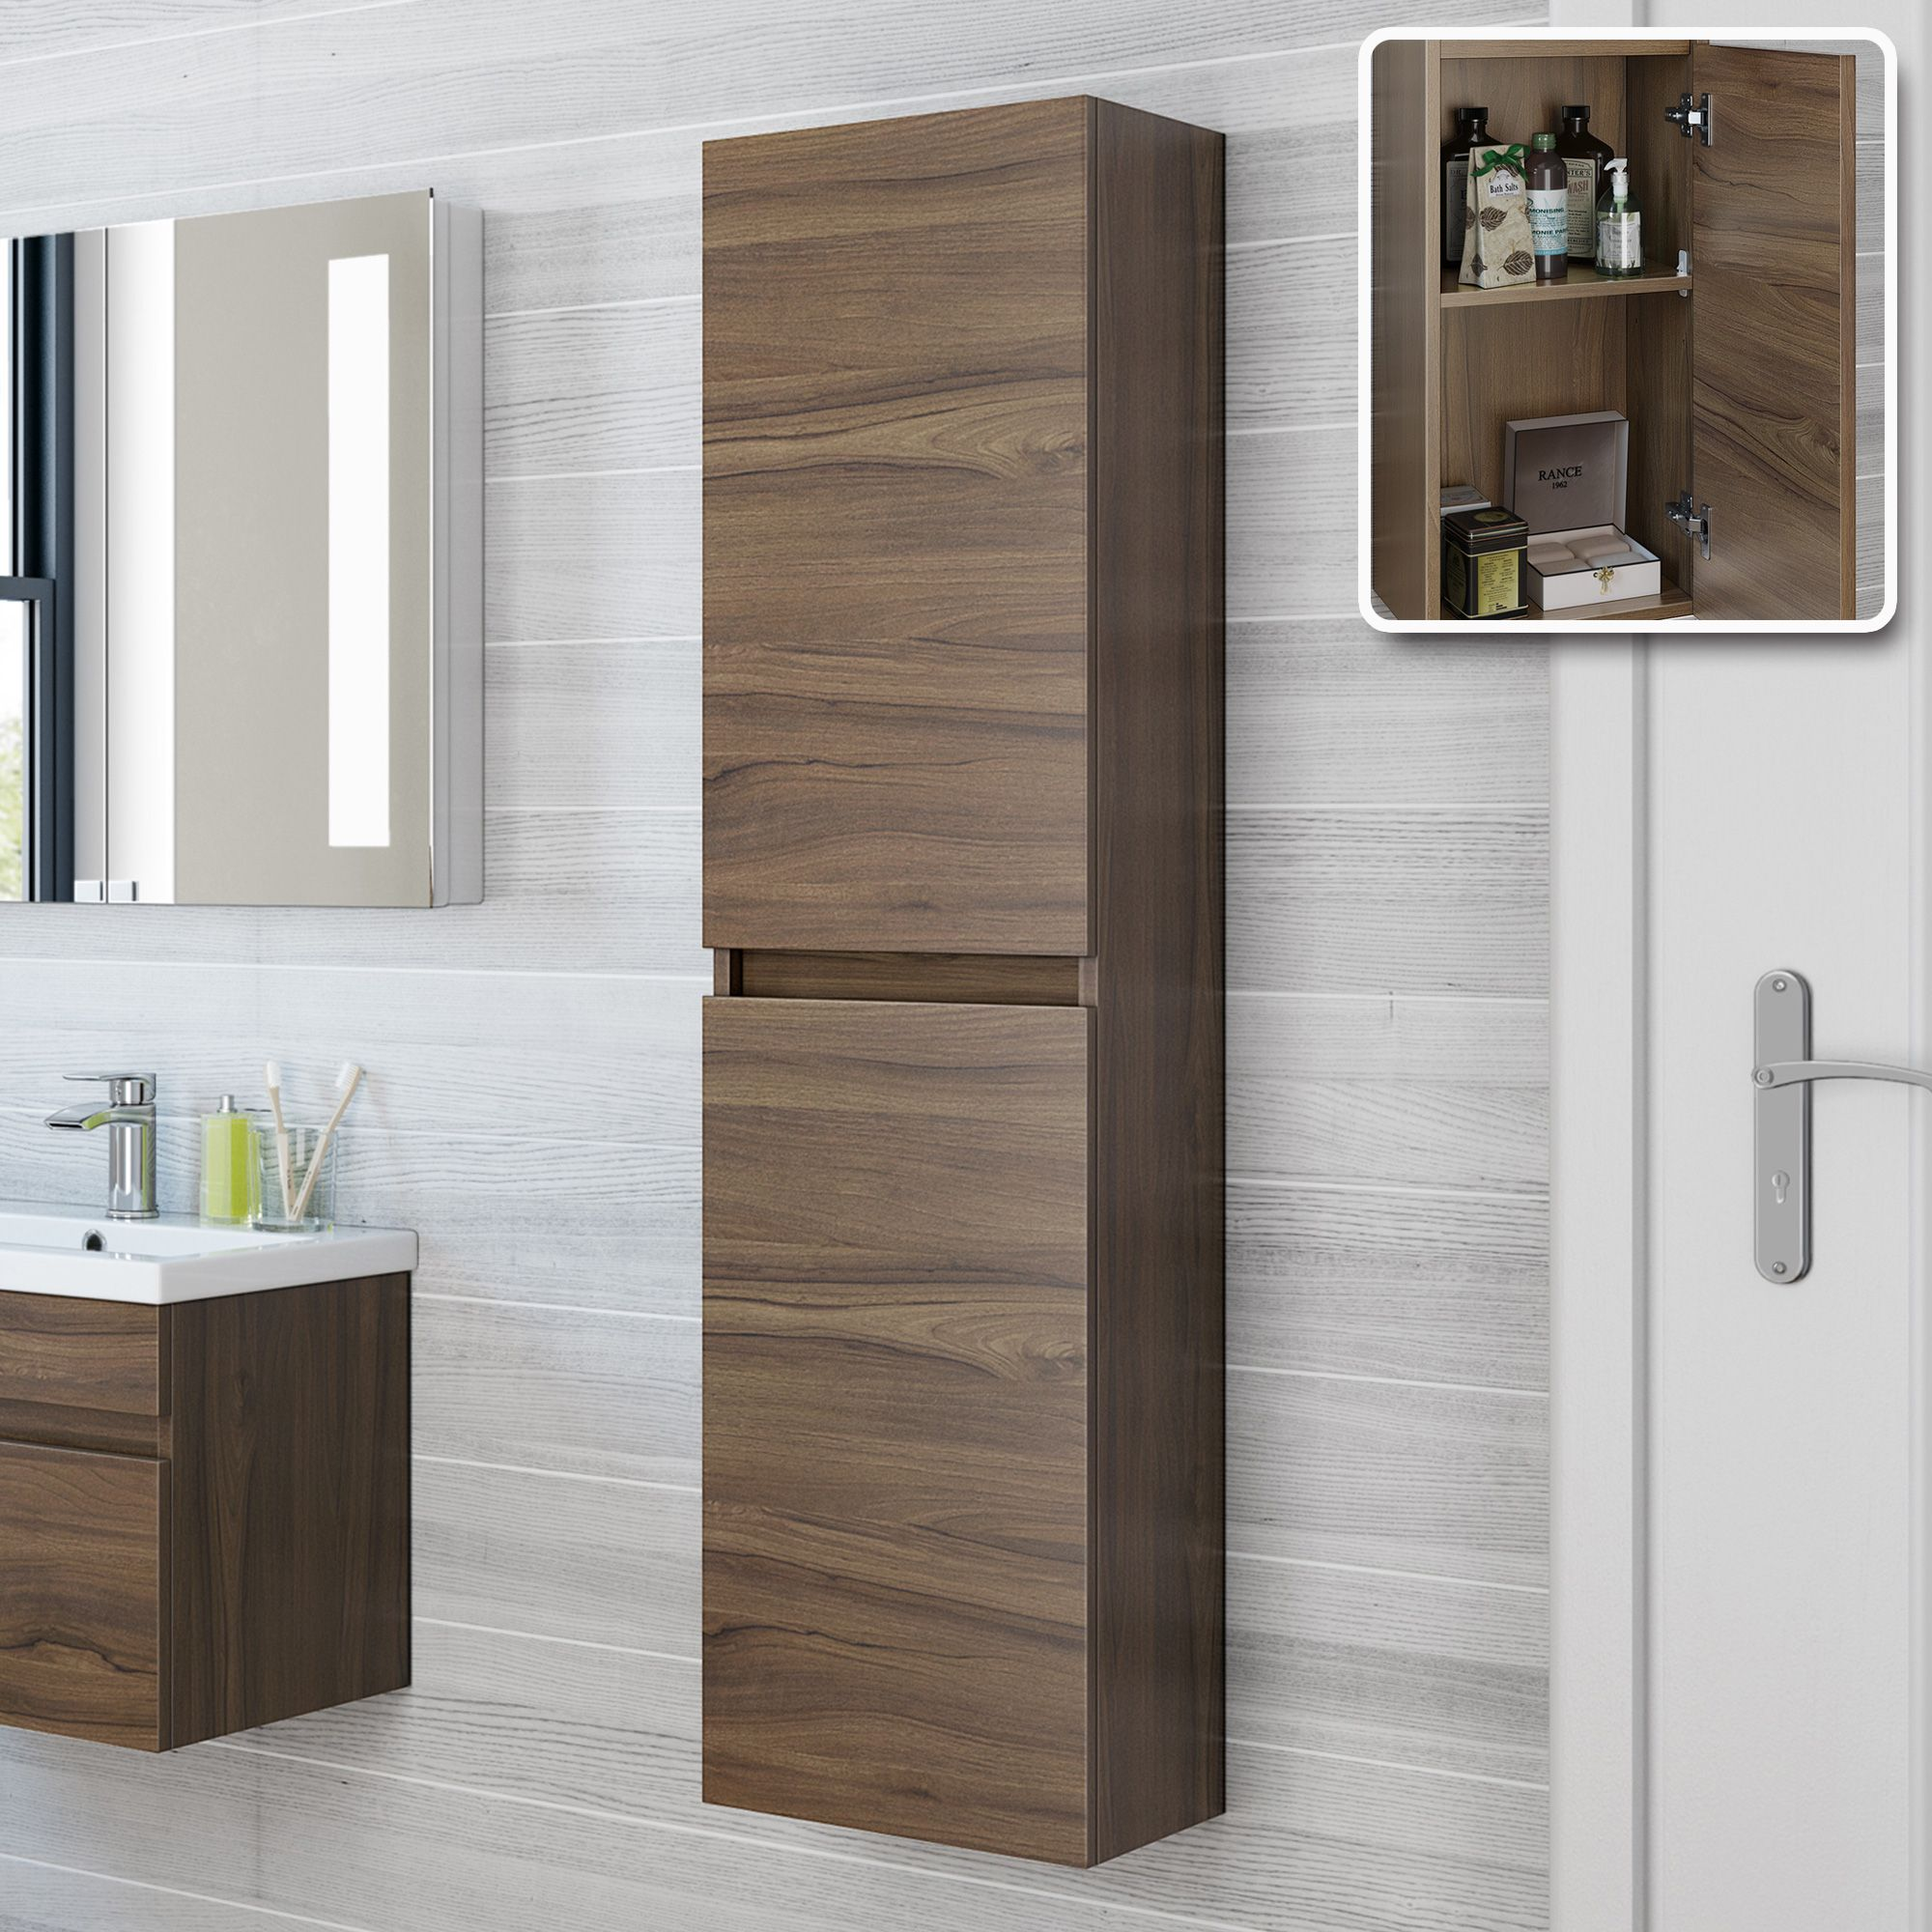 1400mm Walnut Tall Wall Mounted Cabinet - Trent ...